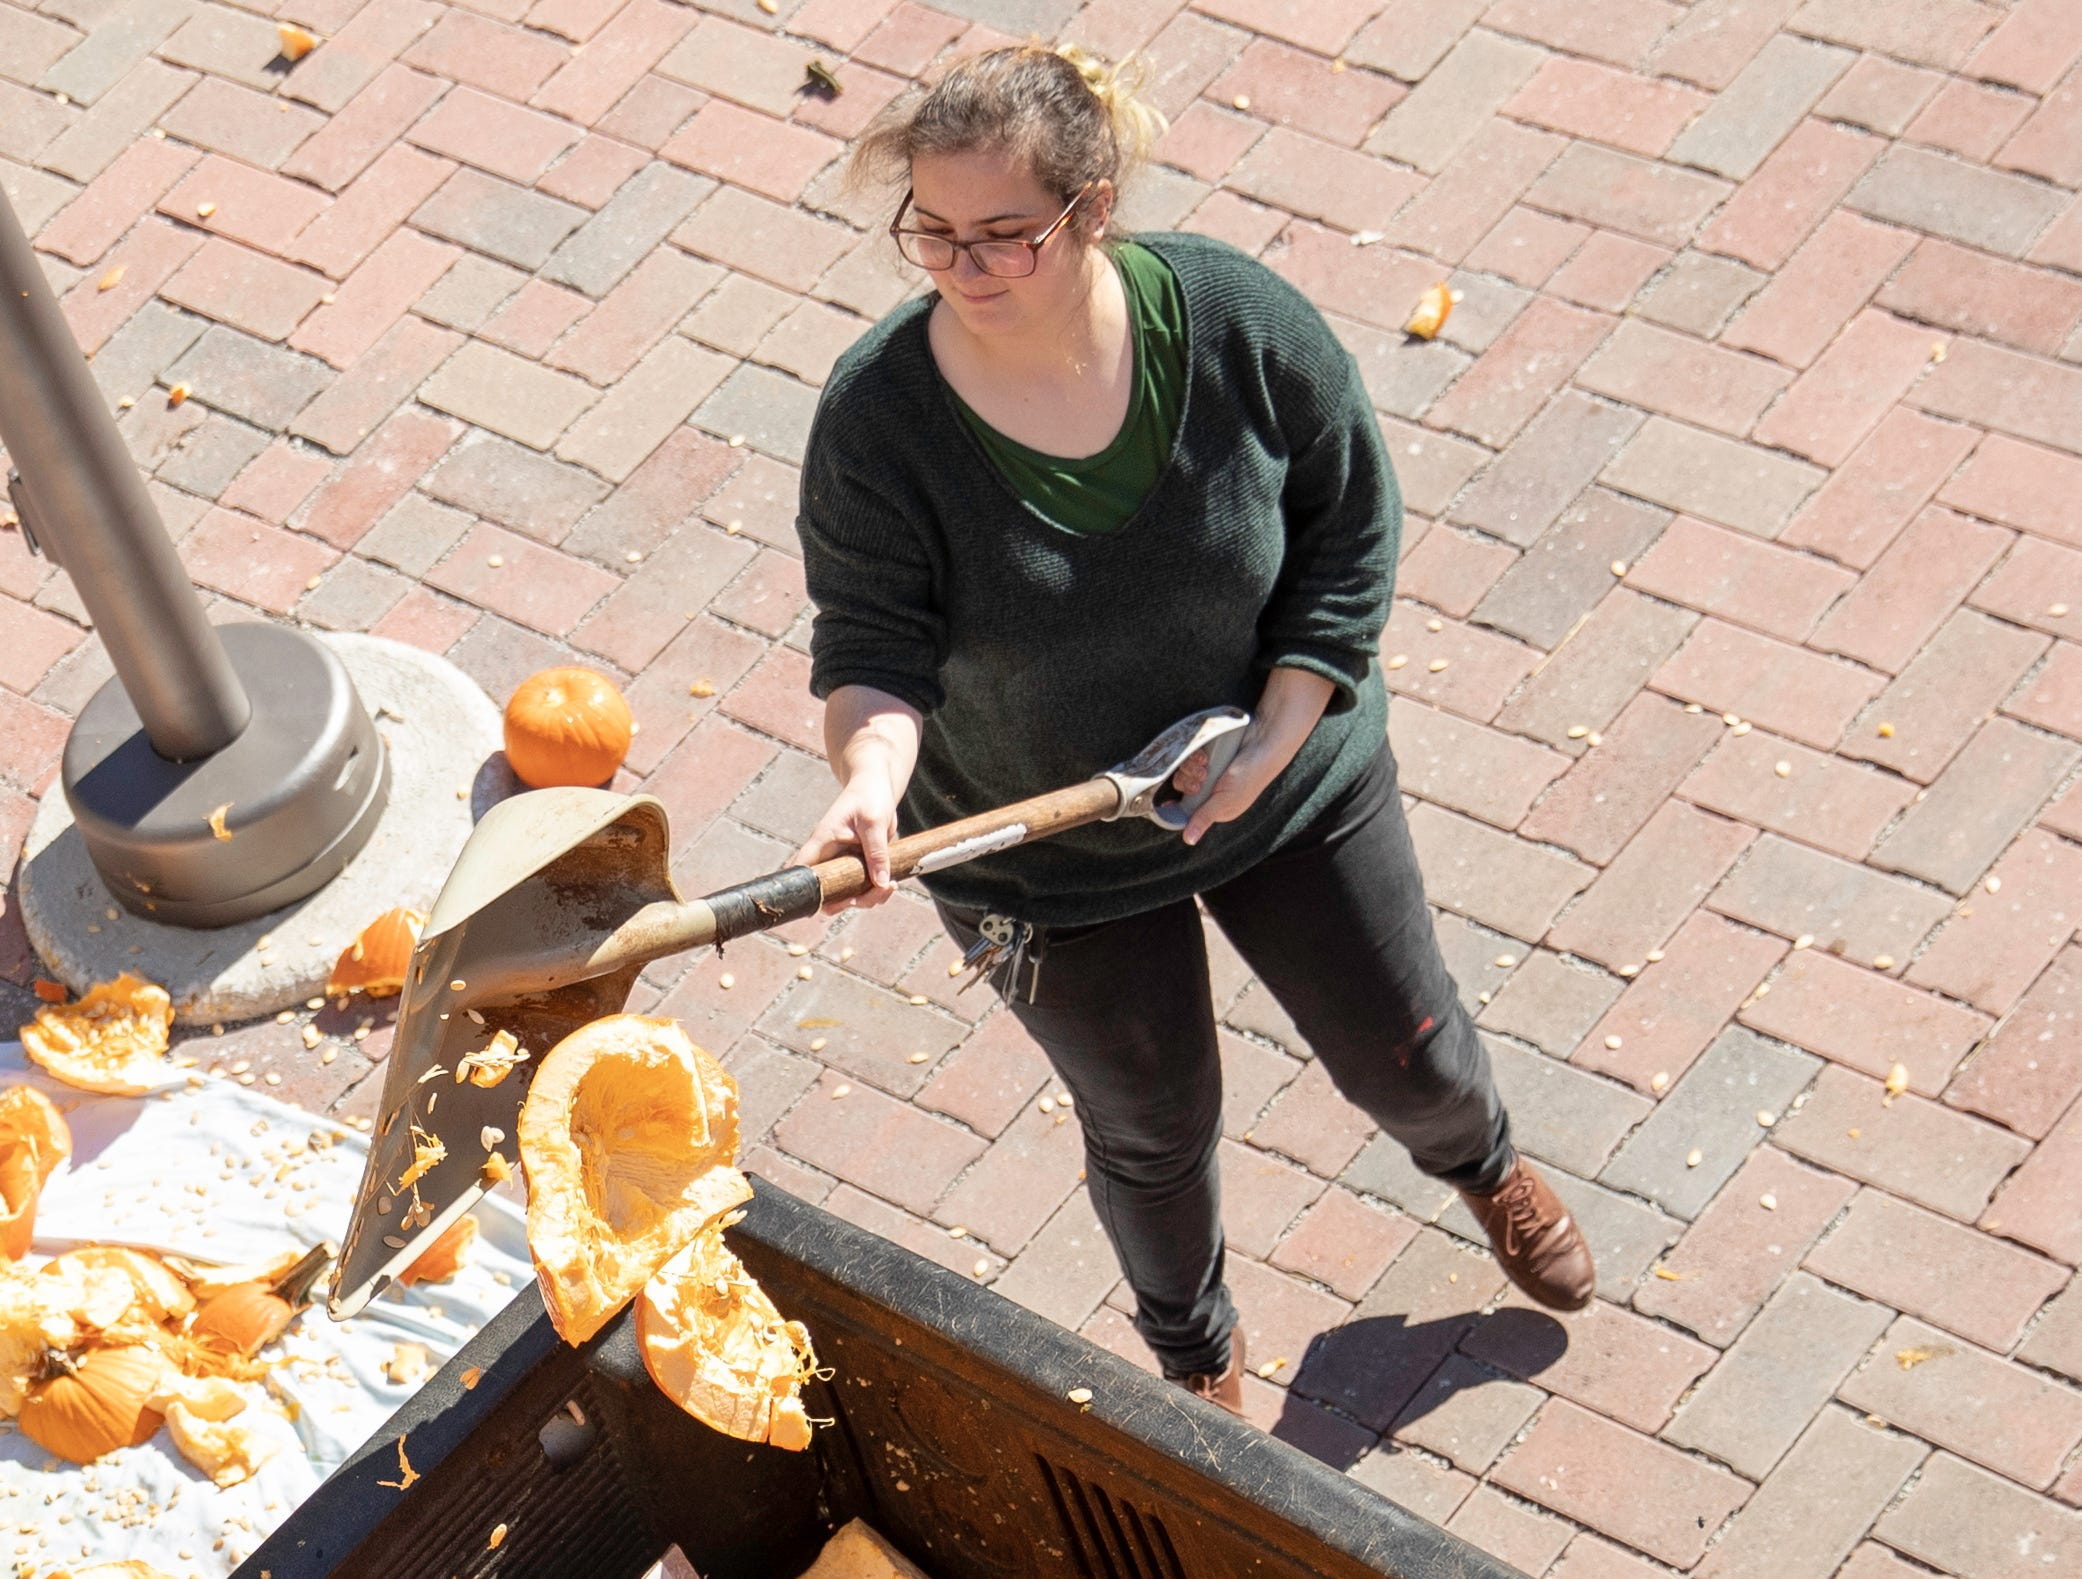 """Erin Kurtz cleans up smashed pumpkins during the second annual Pumpkin Smash event, Tuesday, Nov. 6, 2018 in Louisville Ky. Kurtz will be the first sustainability program graduate this December. """"I was supposed to be a senior when it came about and I just kind of changed everything to fit it in because it was something that I'm really passionate about."""" Kurtz said. """"We need to participate in the elections so we can have people that support our views and make change in relation to sustainability and sustaining our communities in the best way possible. We need to find the right people that can do that."""""""